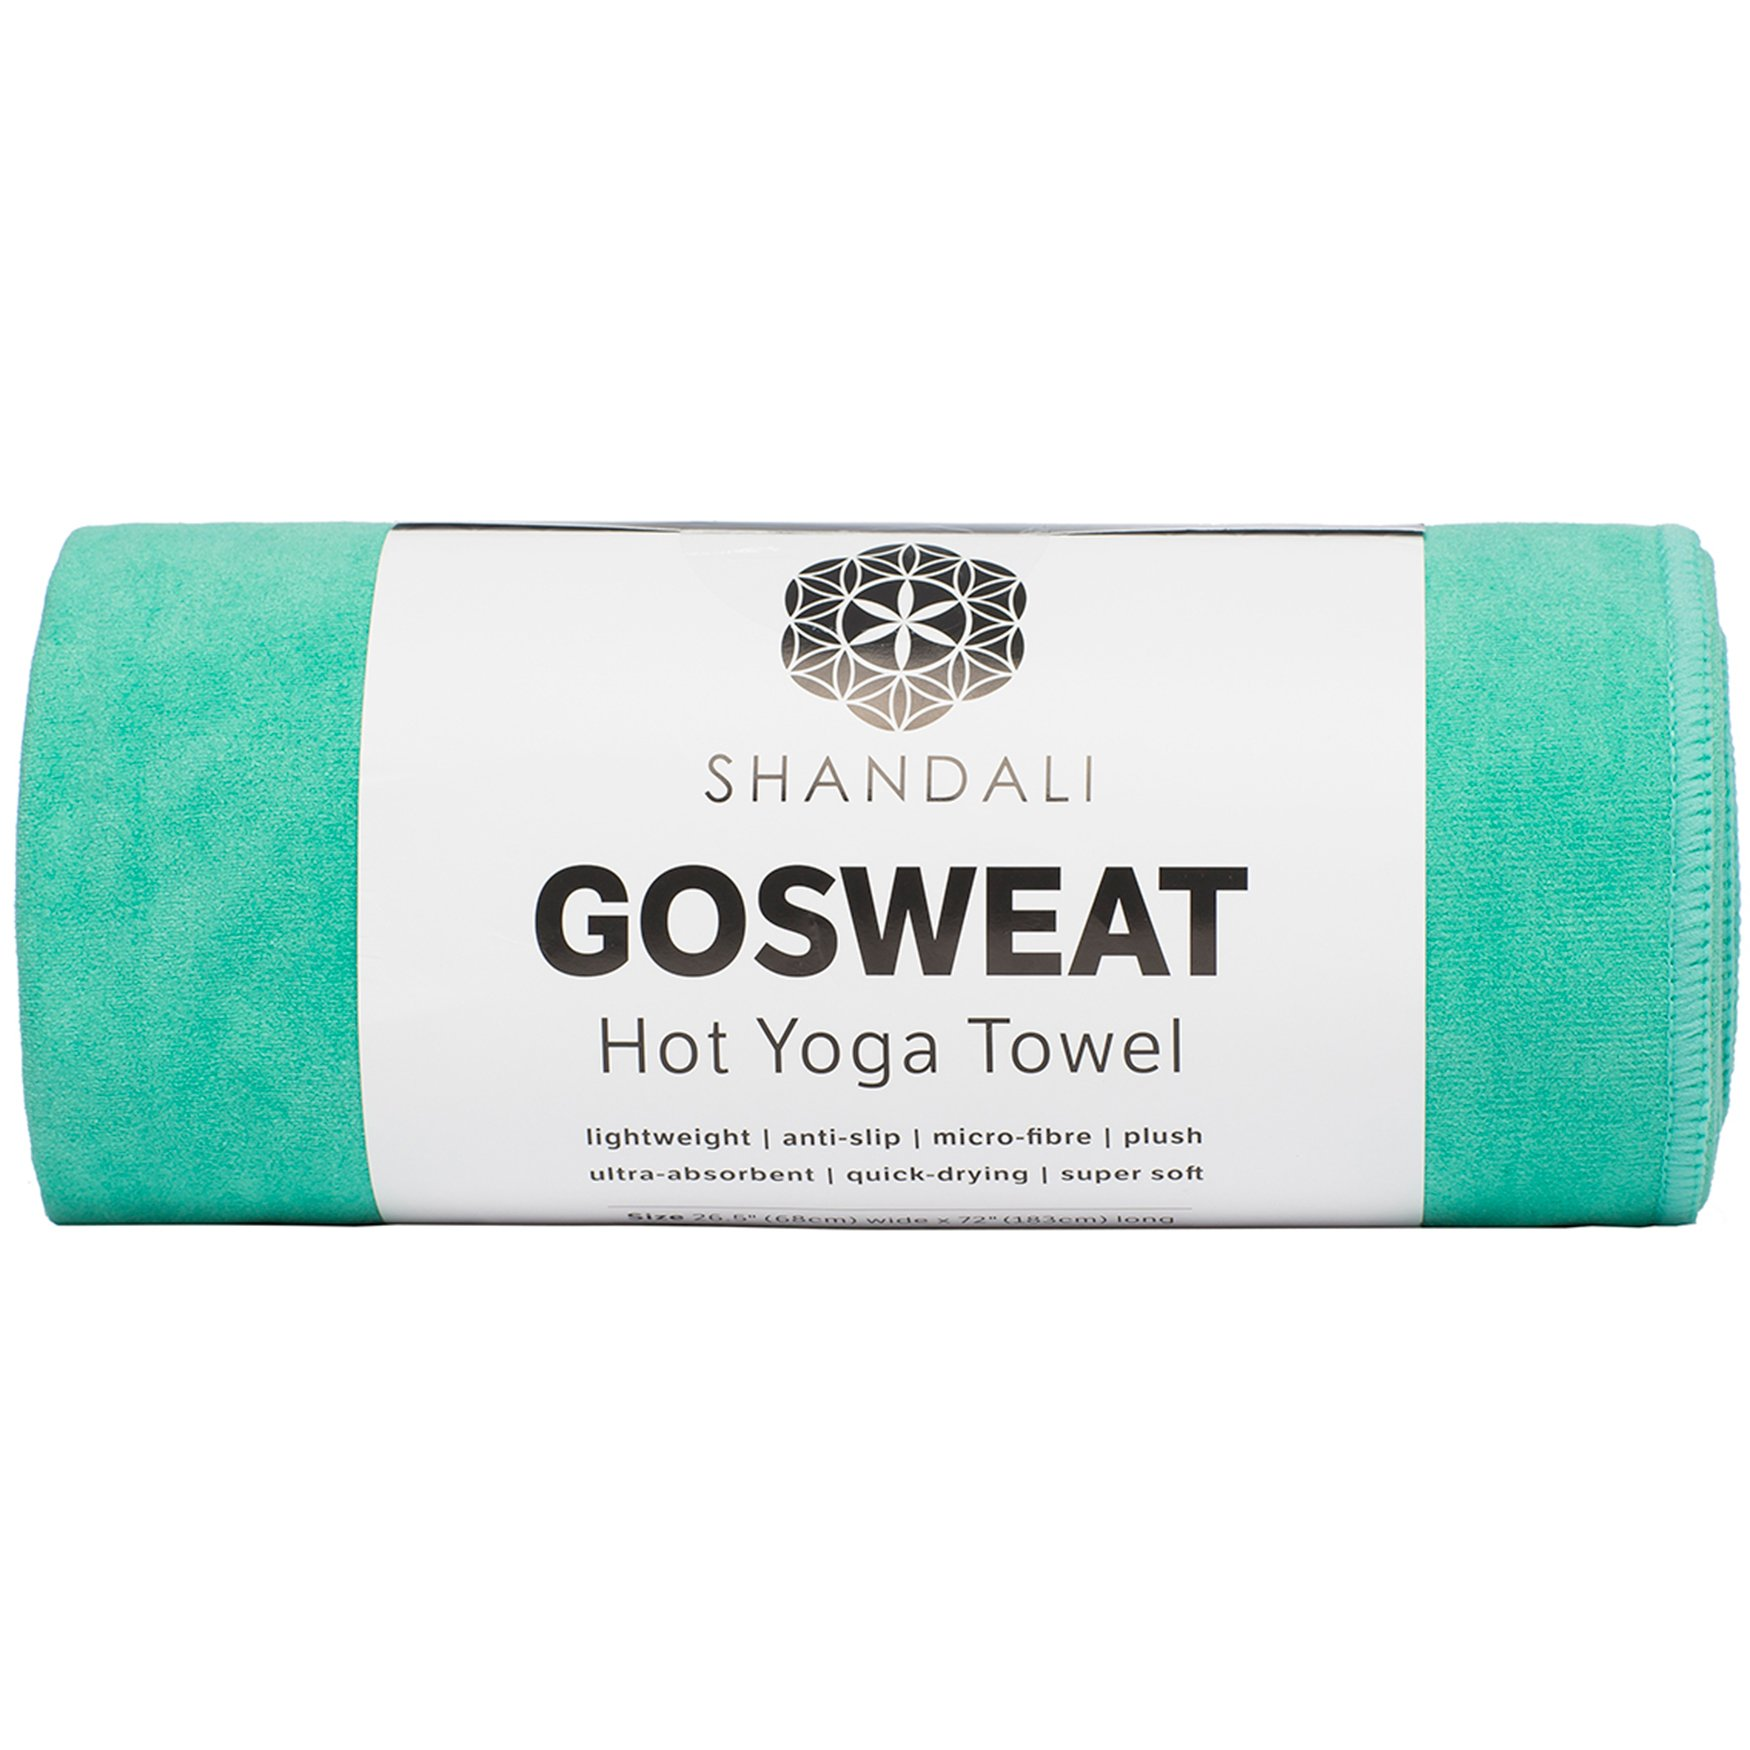 Shandali Gosweat Hot Yoga Towel, Color Teal, Size 26.5 X